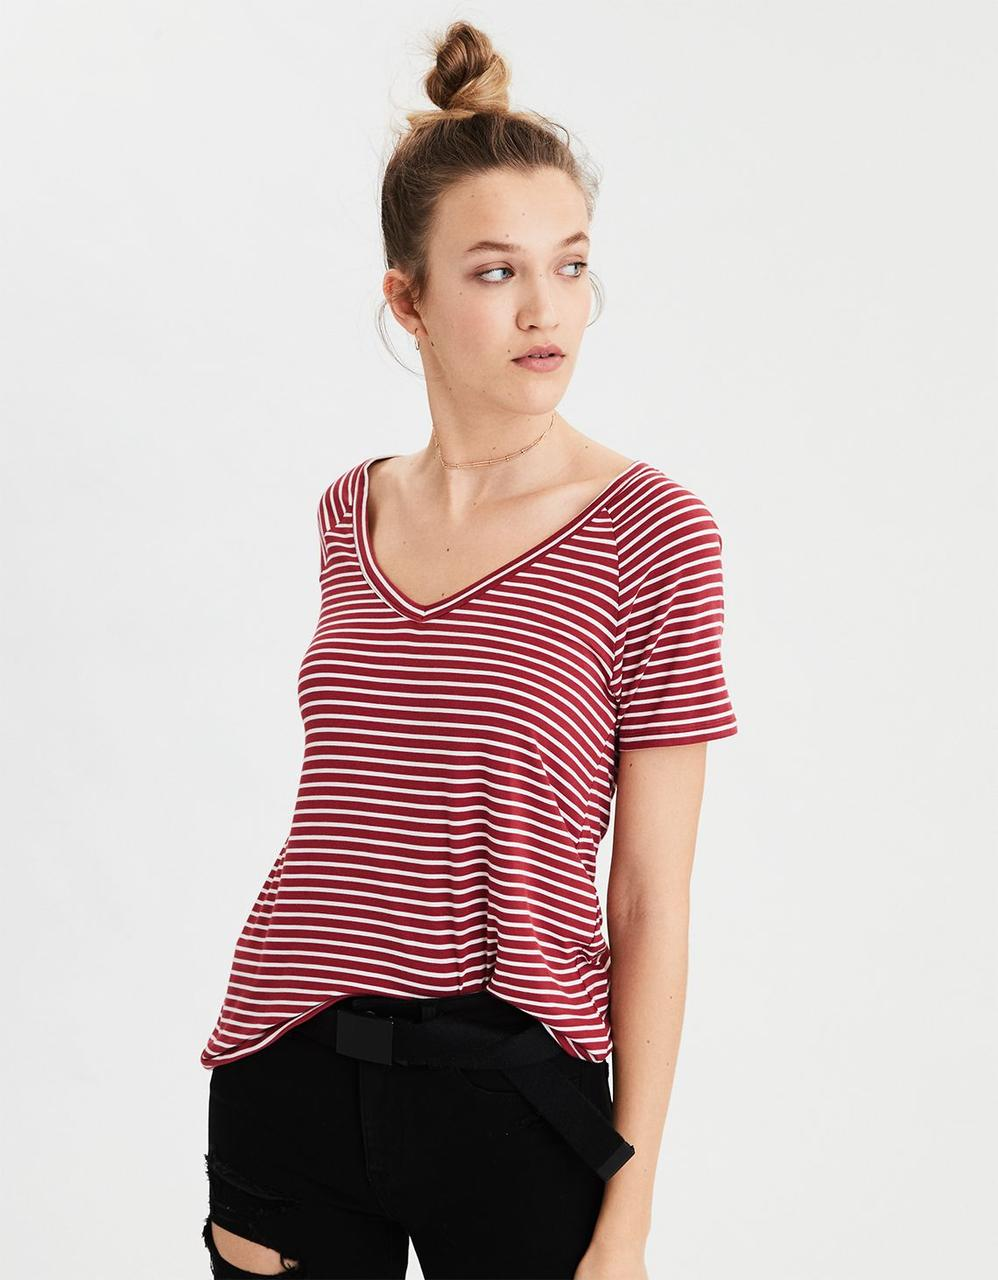 c219c27f American Eagle T-Shirts, AE STRIPED SOFT & SEXY V-NECK T-SHIRT for ...